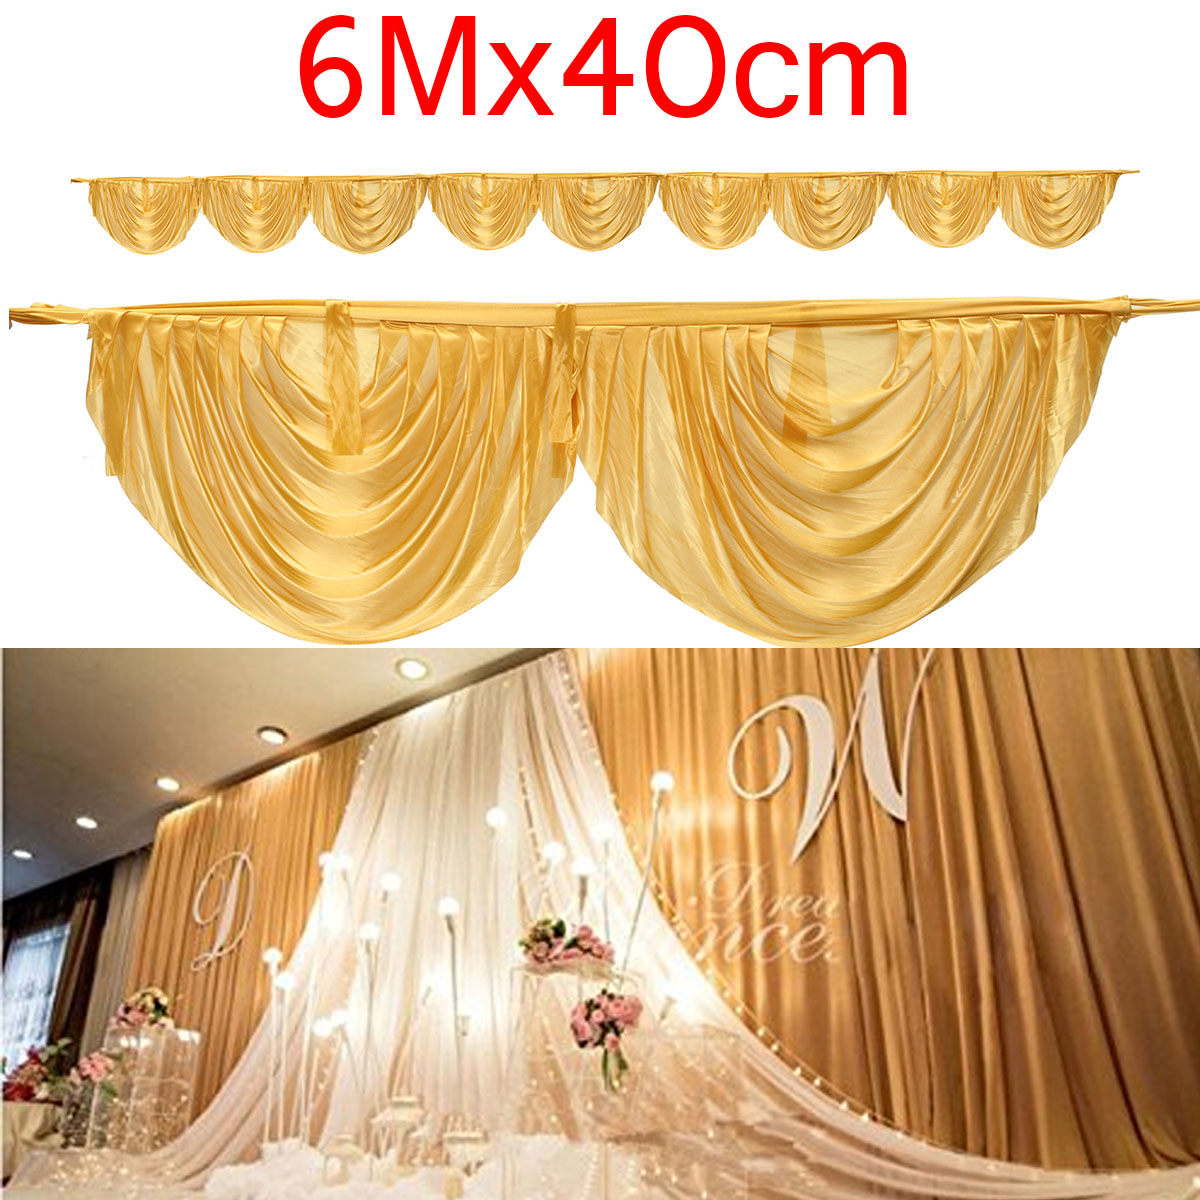 600x40cm Silk Fabric Wedding Backdrops Curtains Swags Diy Wedding